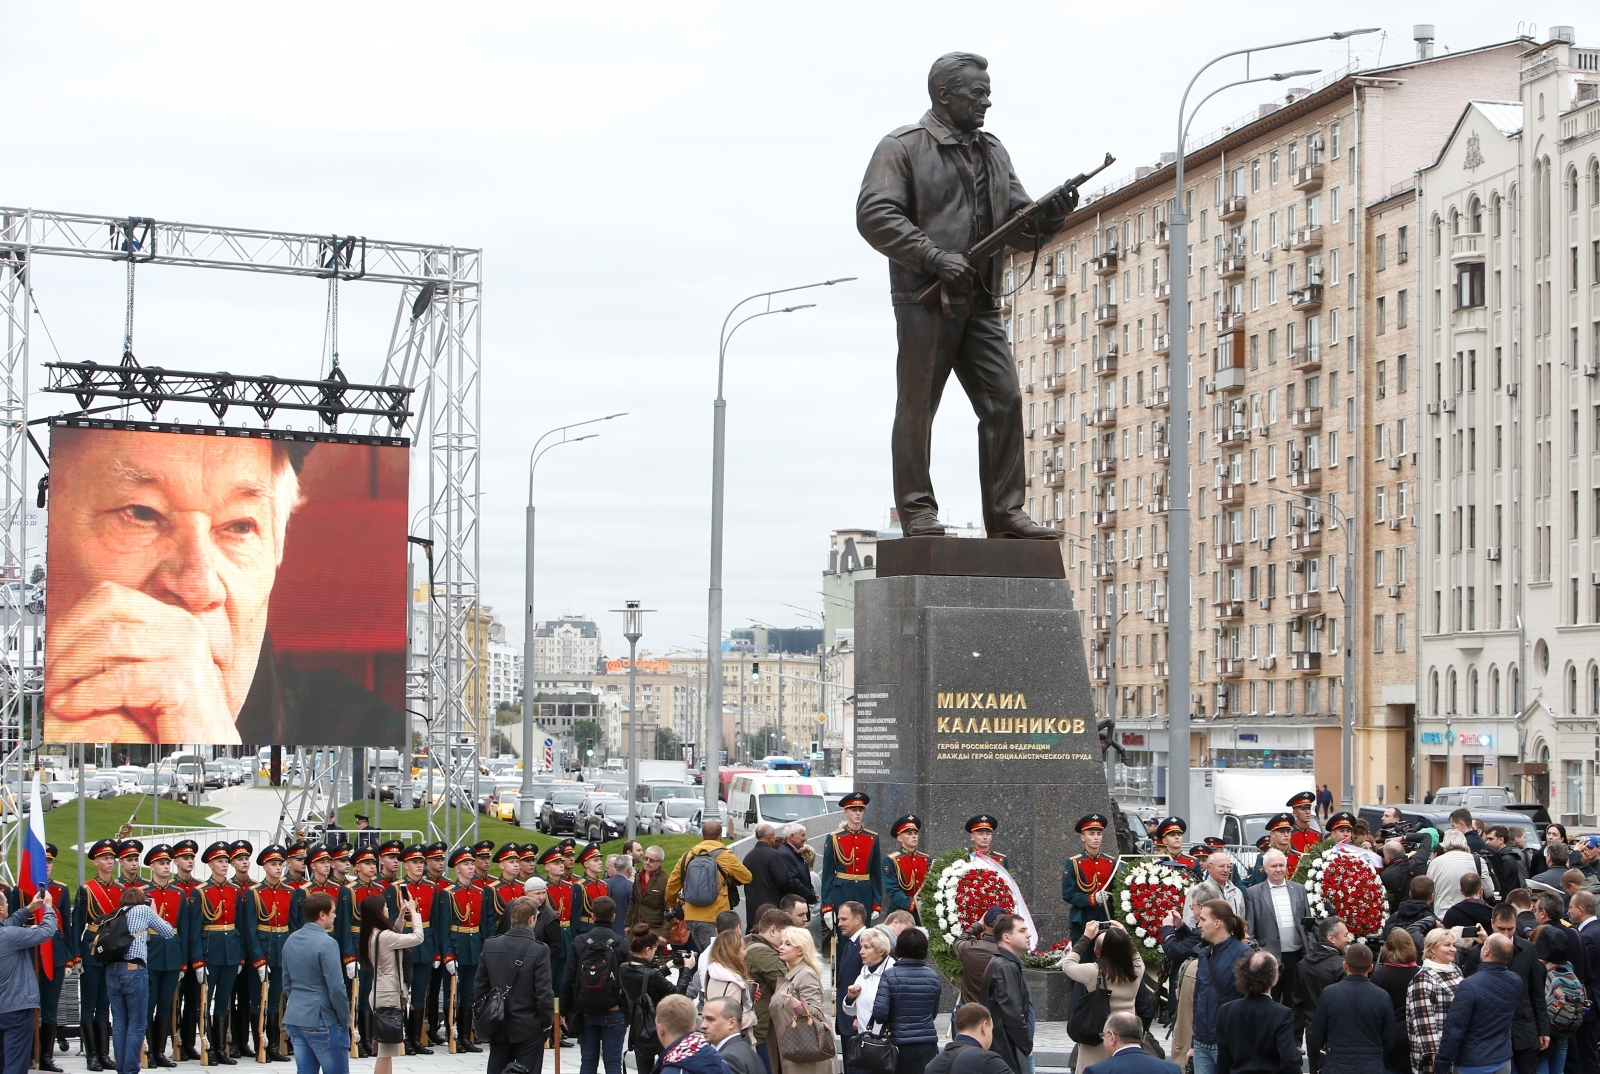 A statue of Mikhail Kalashnikov, the inventor of the world's most widespread firearm, AK-47 assault rifle, has been unveiled in Moscow